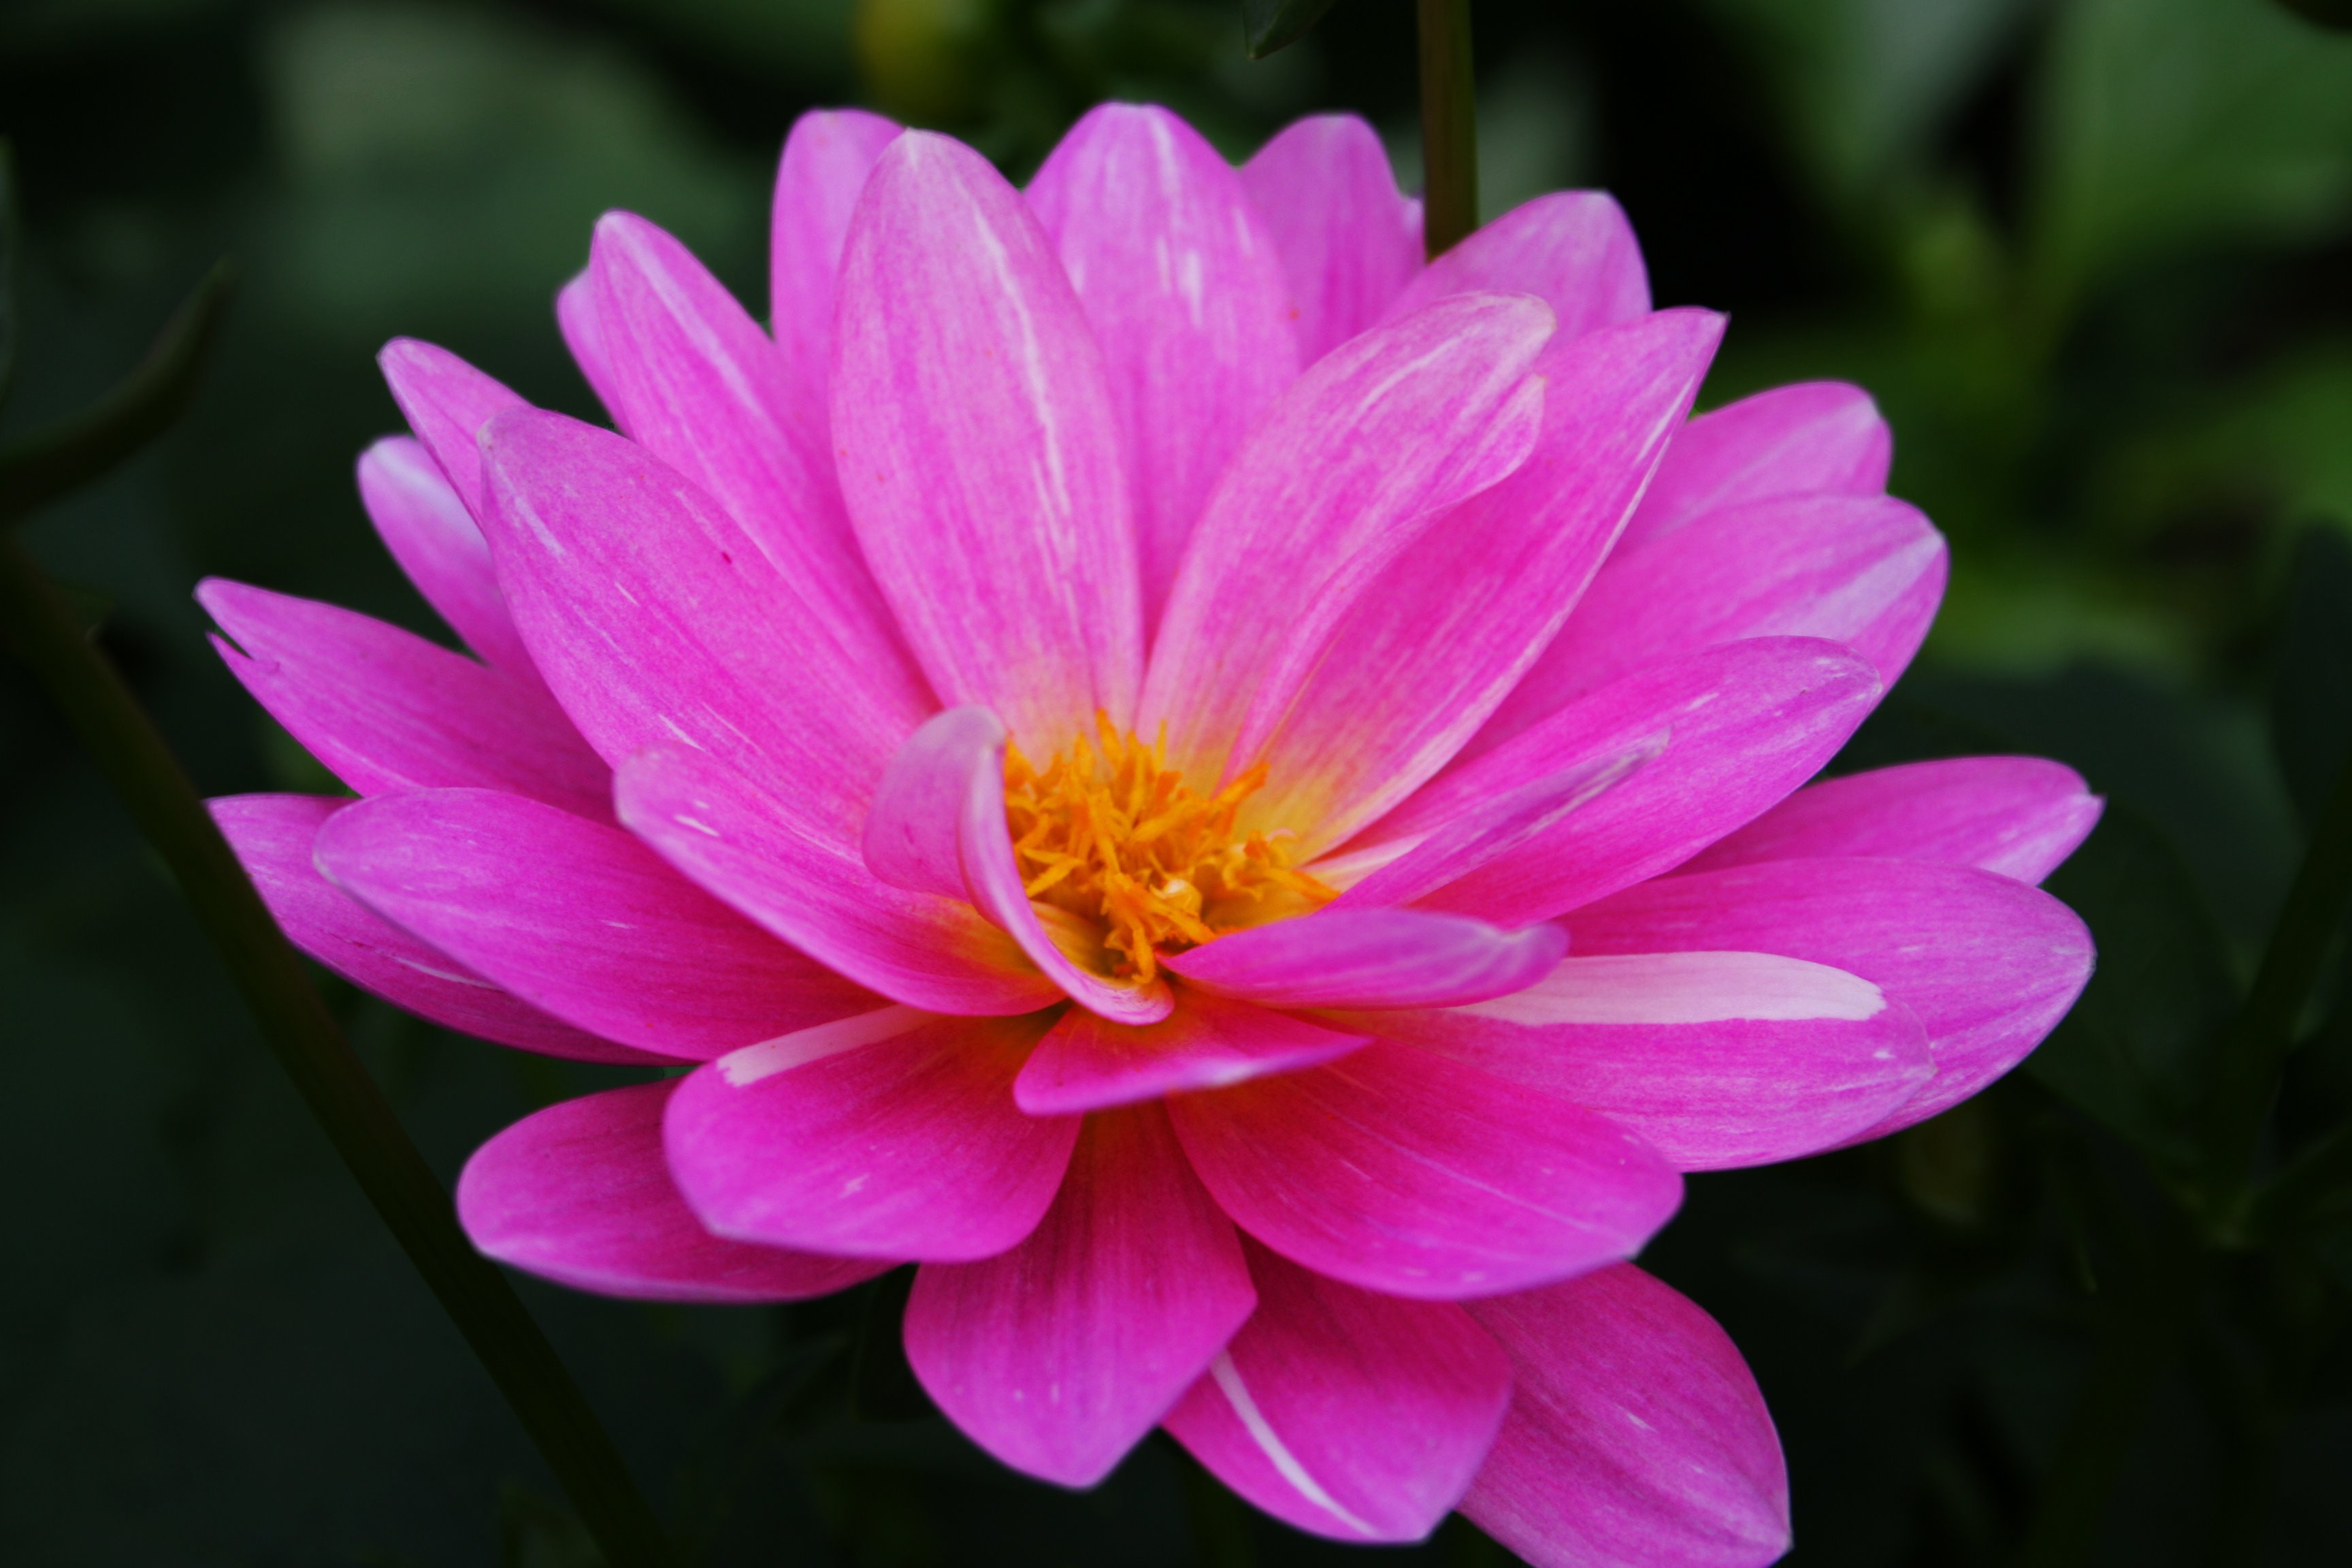 Pink Flower Wallpapers High Quality Download Free